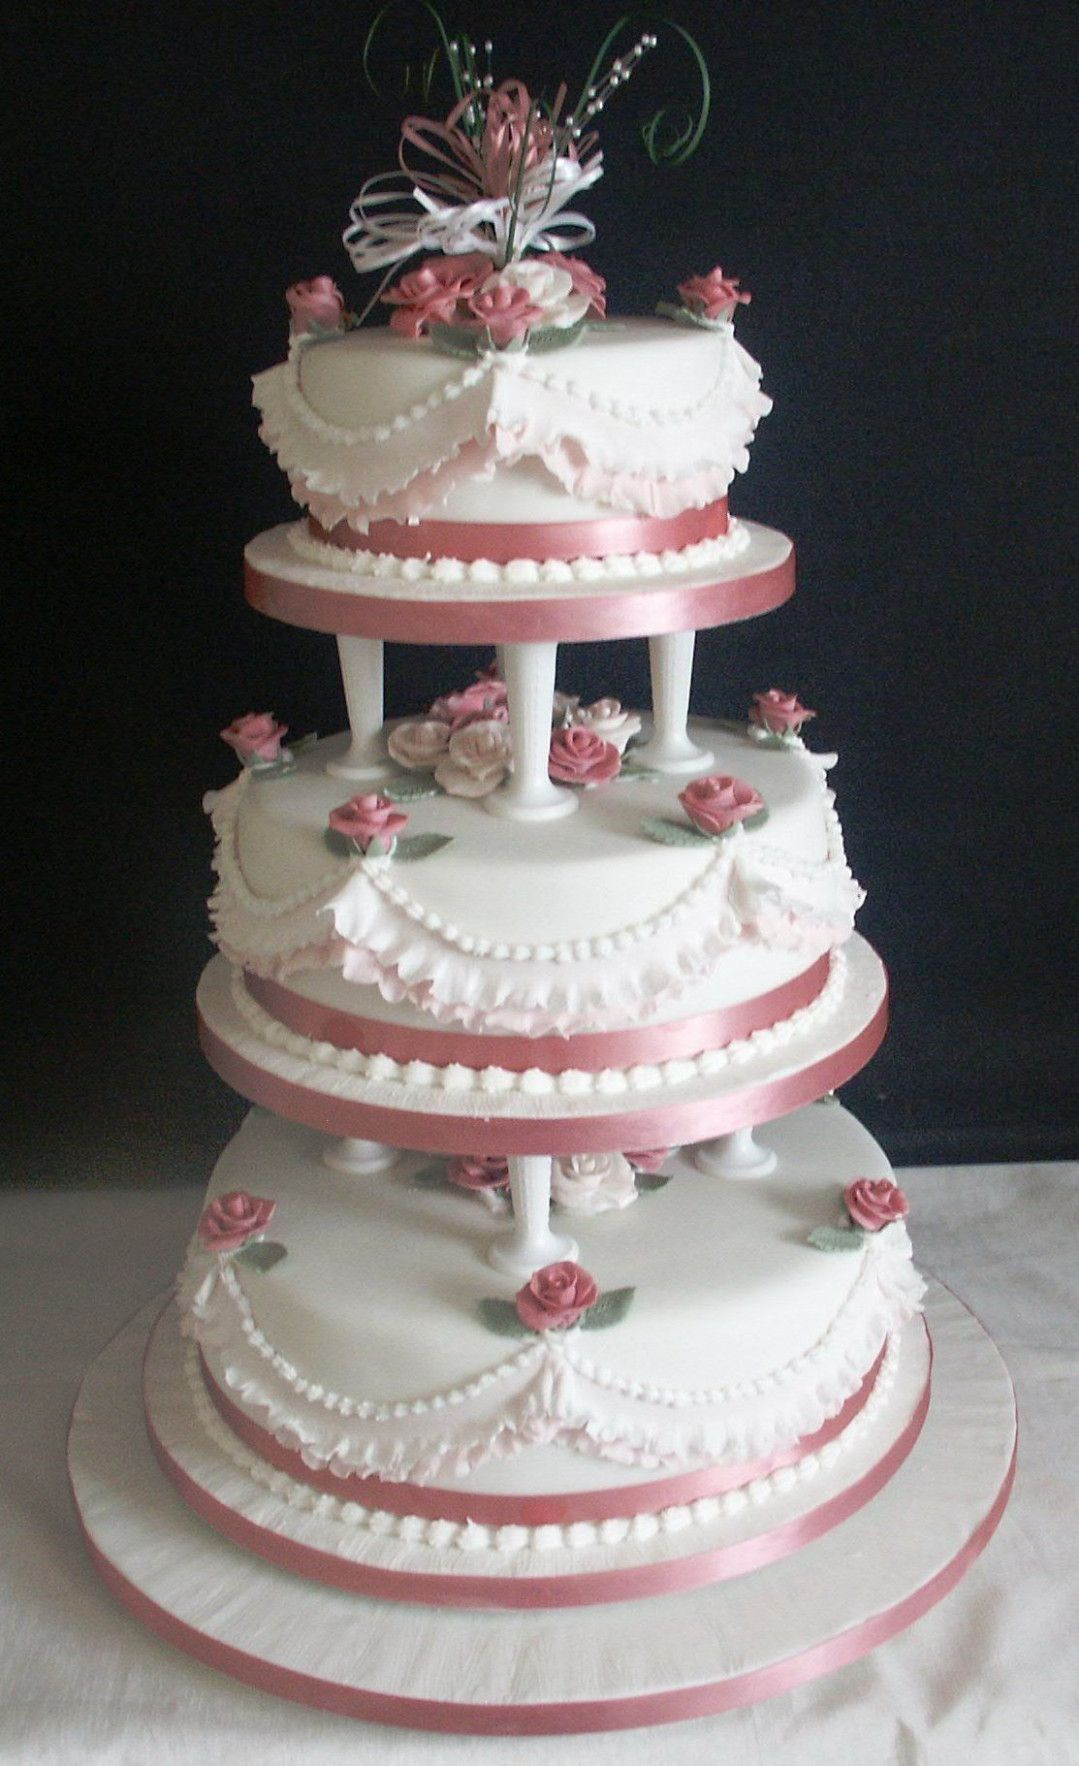 Traditional Wedding Cakes With Pillars Traditional Wedding Cakes